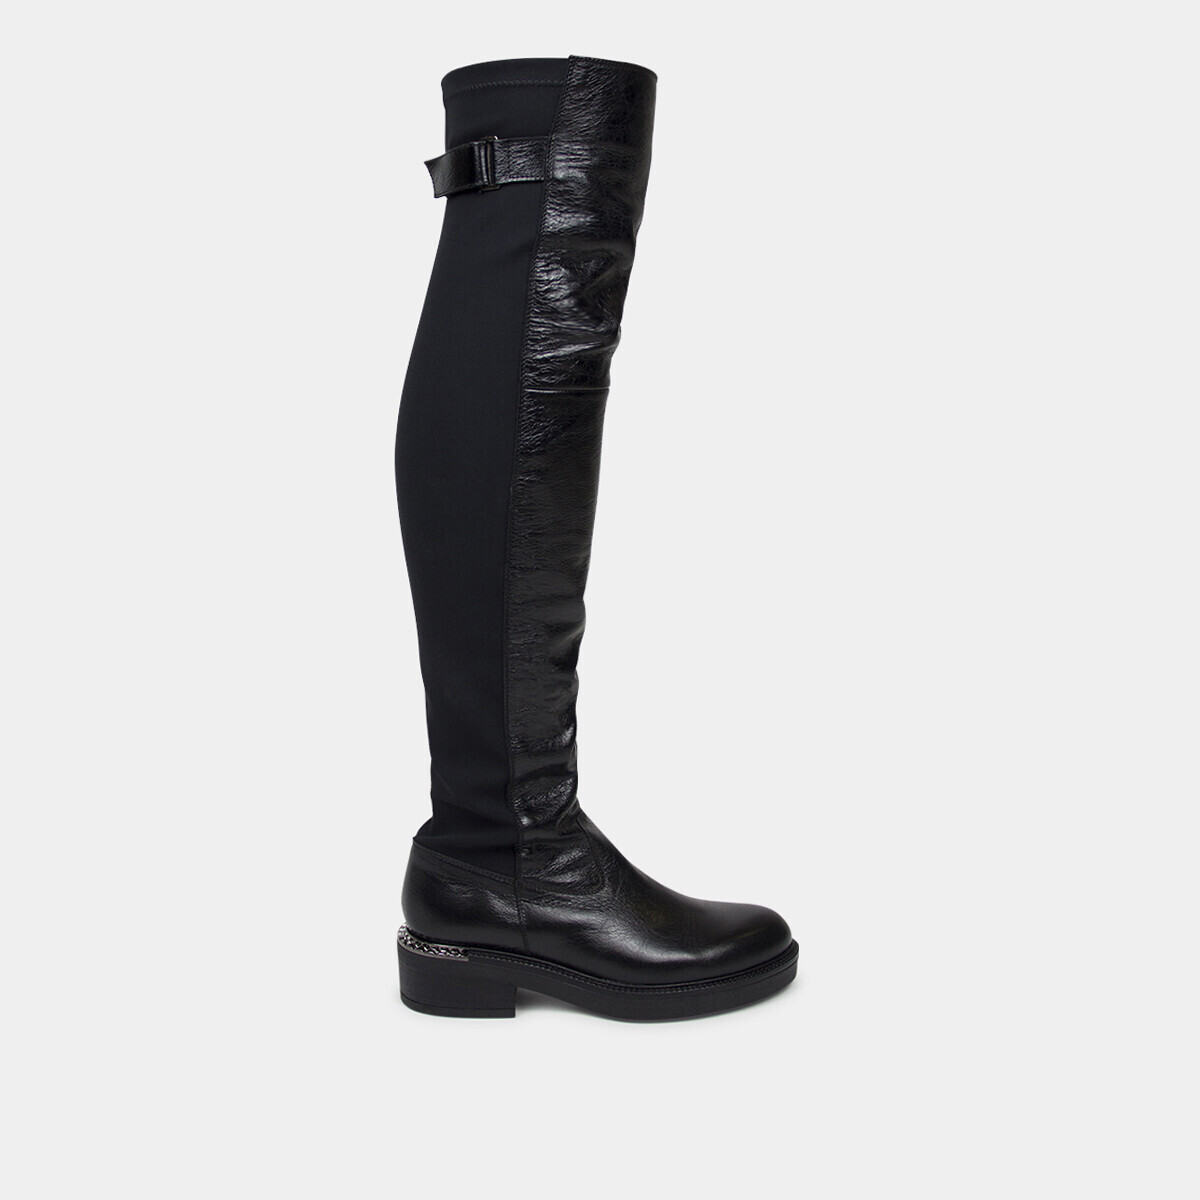 c29e74ab0be Thigh high boots in black stretch leather - Jonak black